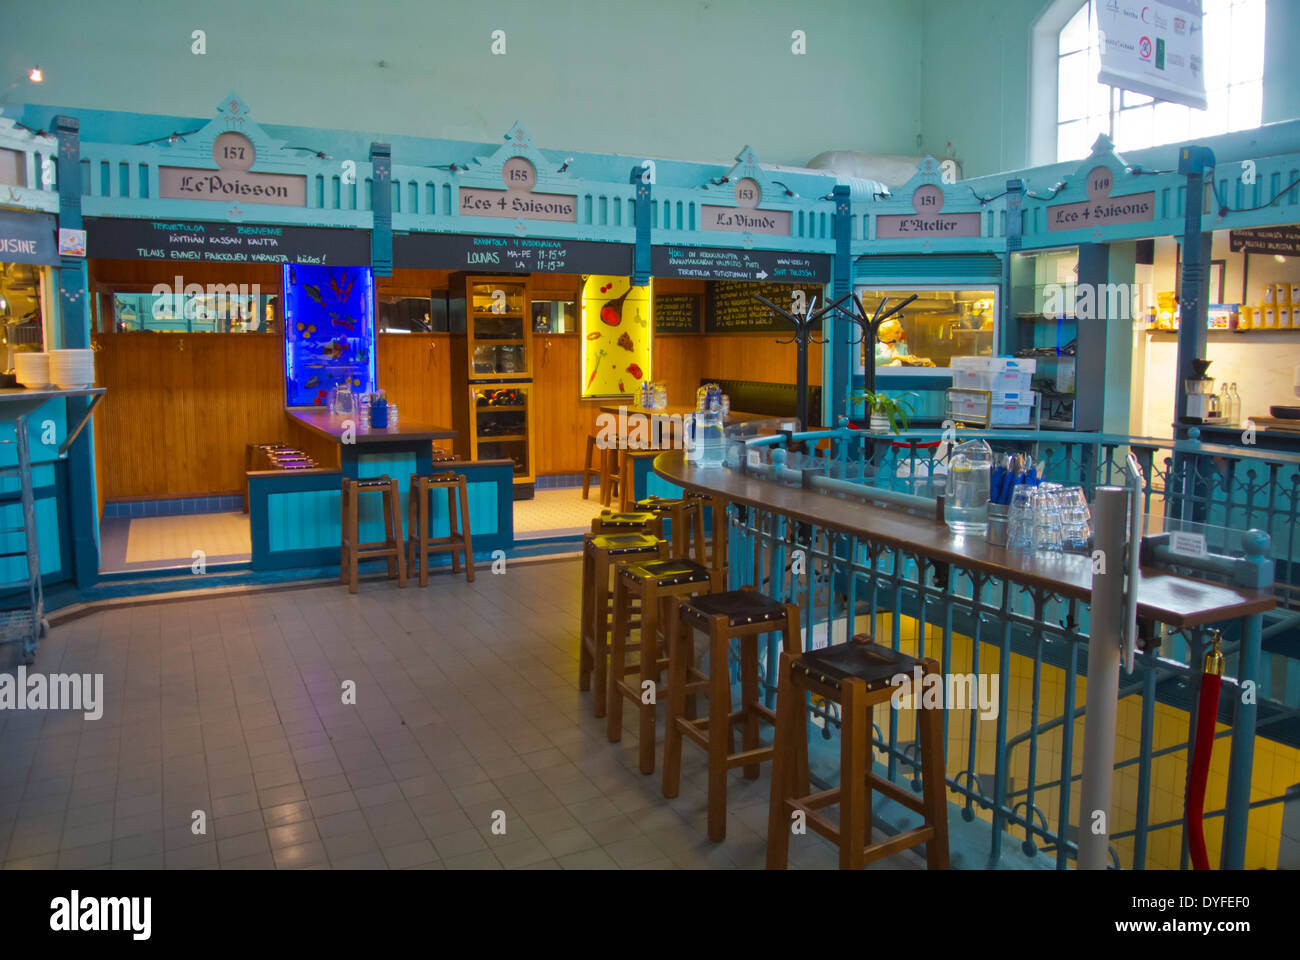 Eating area, Tampereen kauppahalli the market hall, Tampere, central Finland, Europe - Stock Image